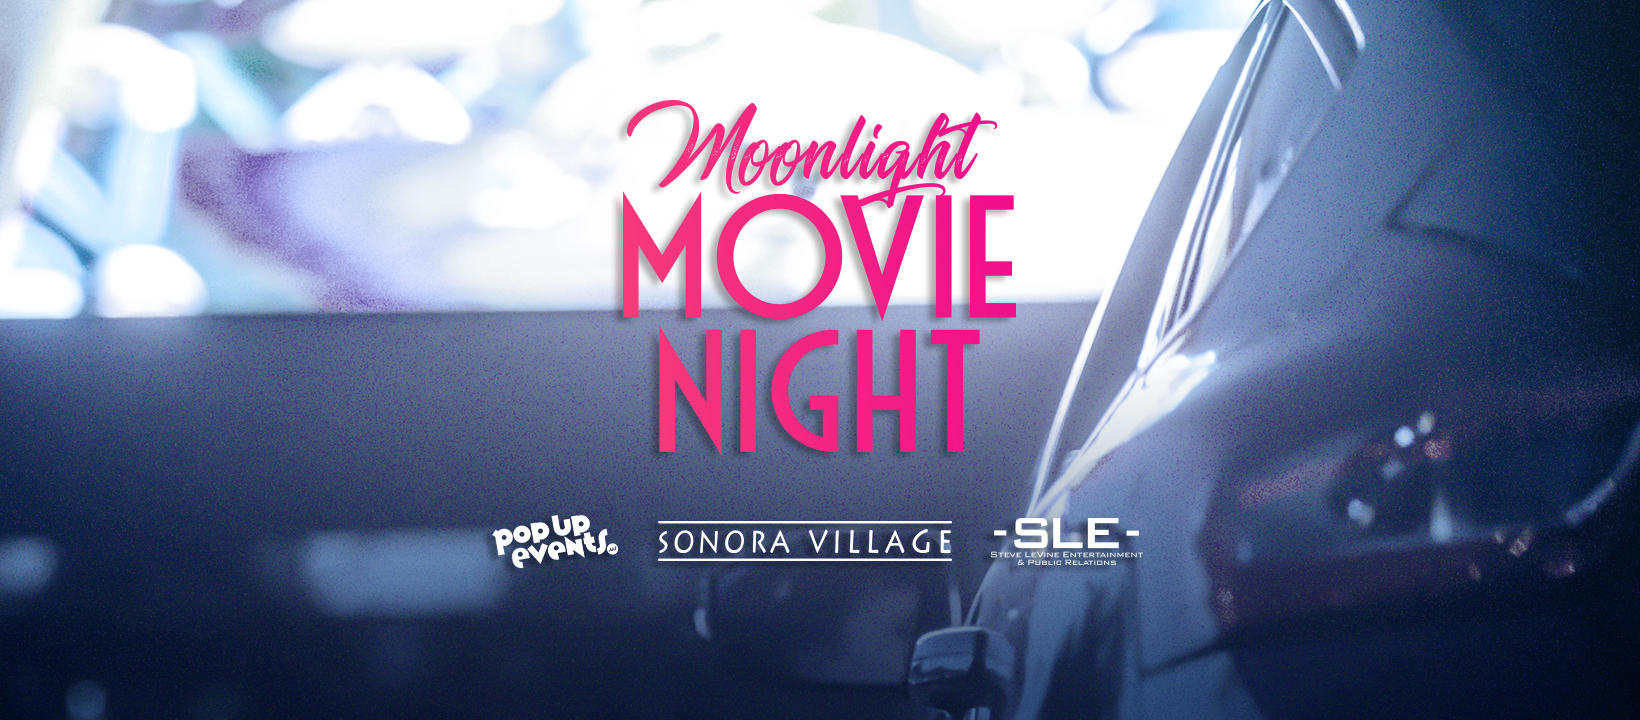 Find tickets from Moonlight Movie Night at Sonora Village